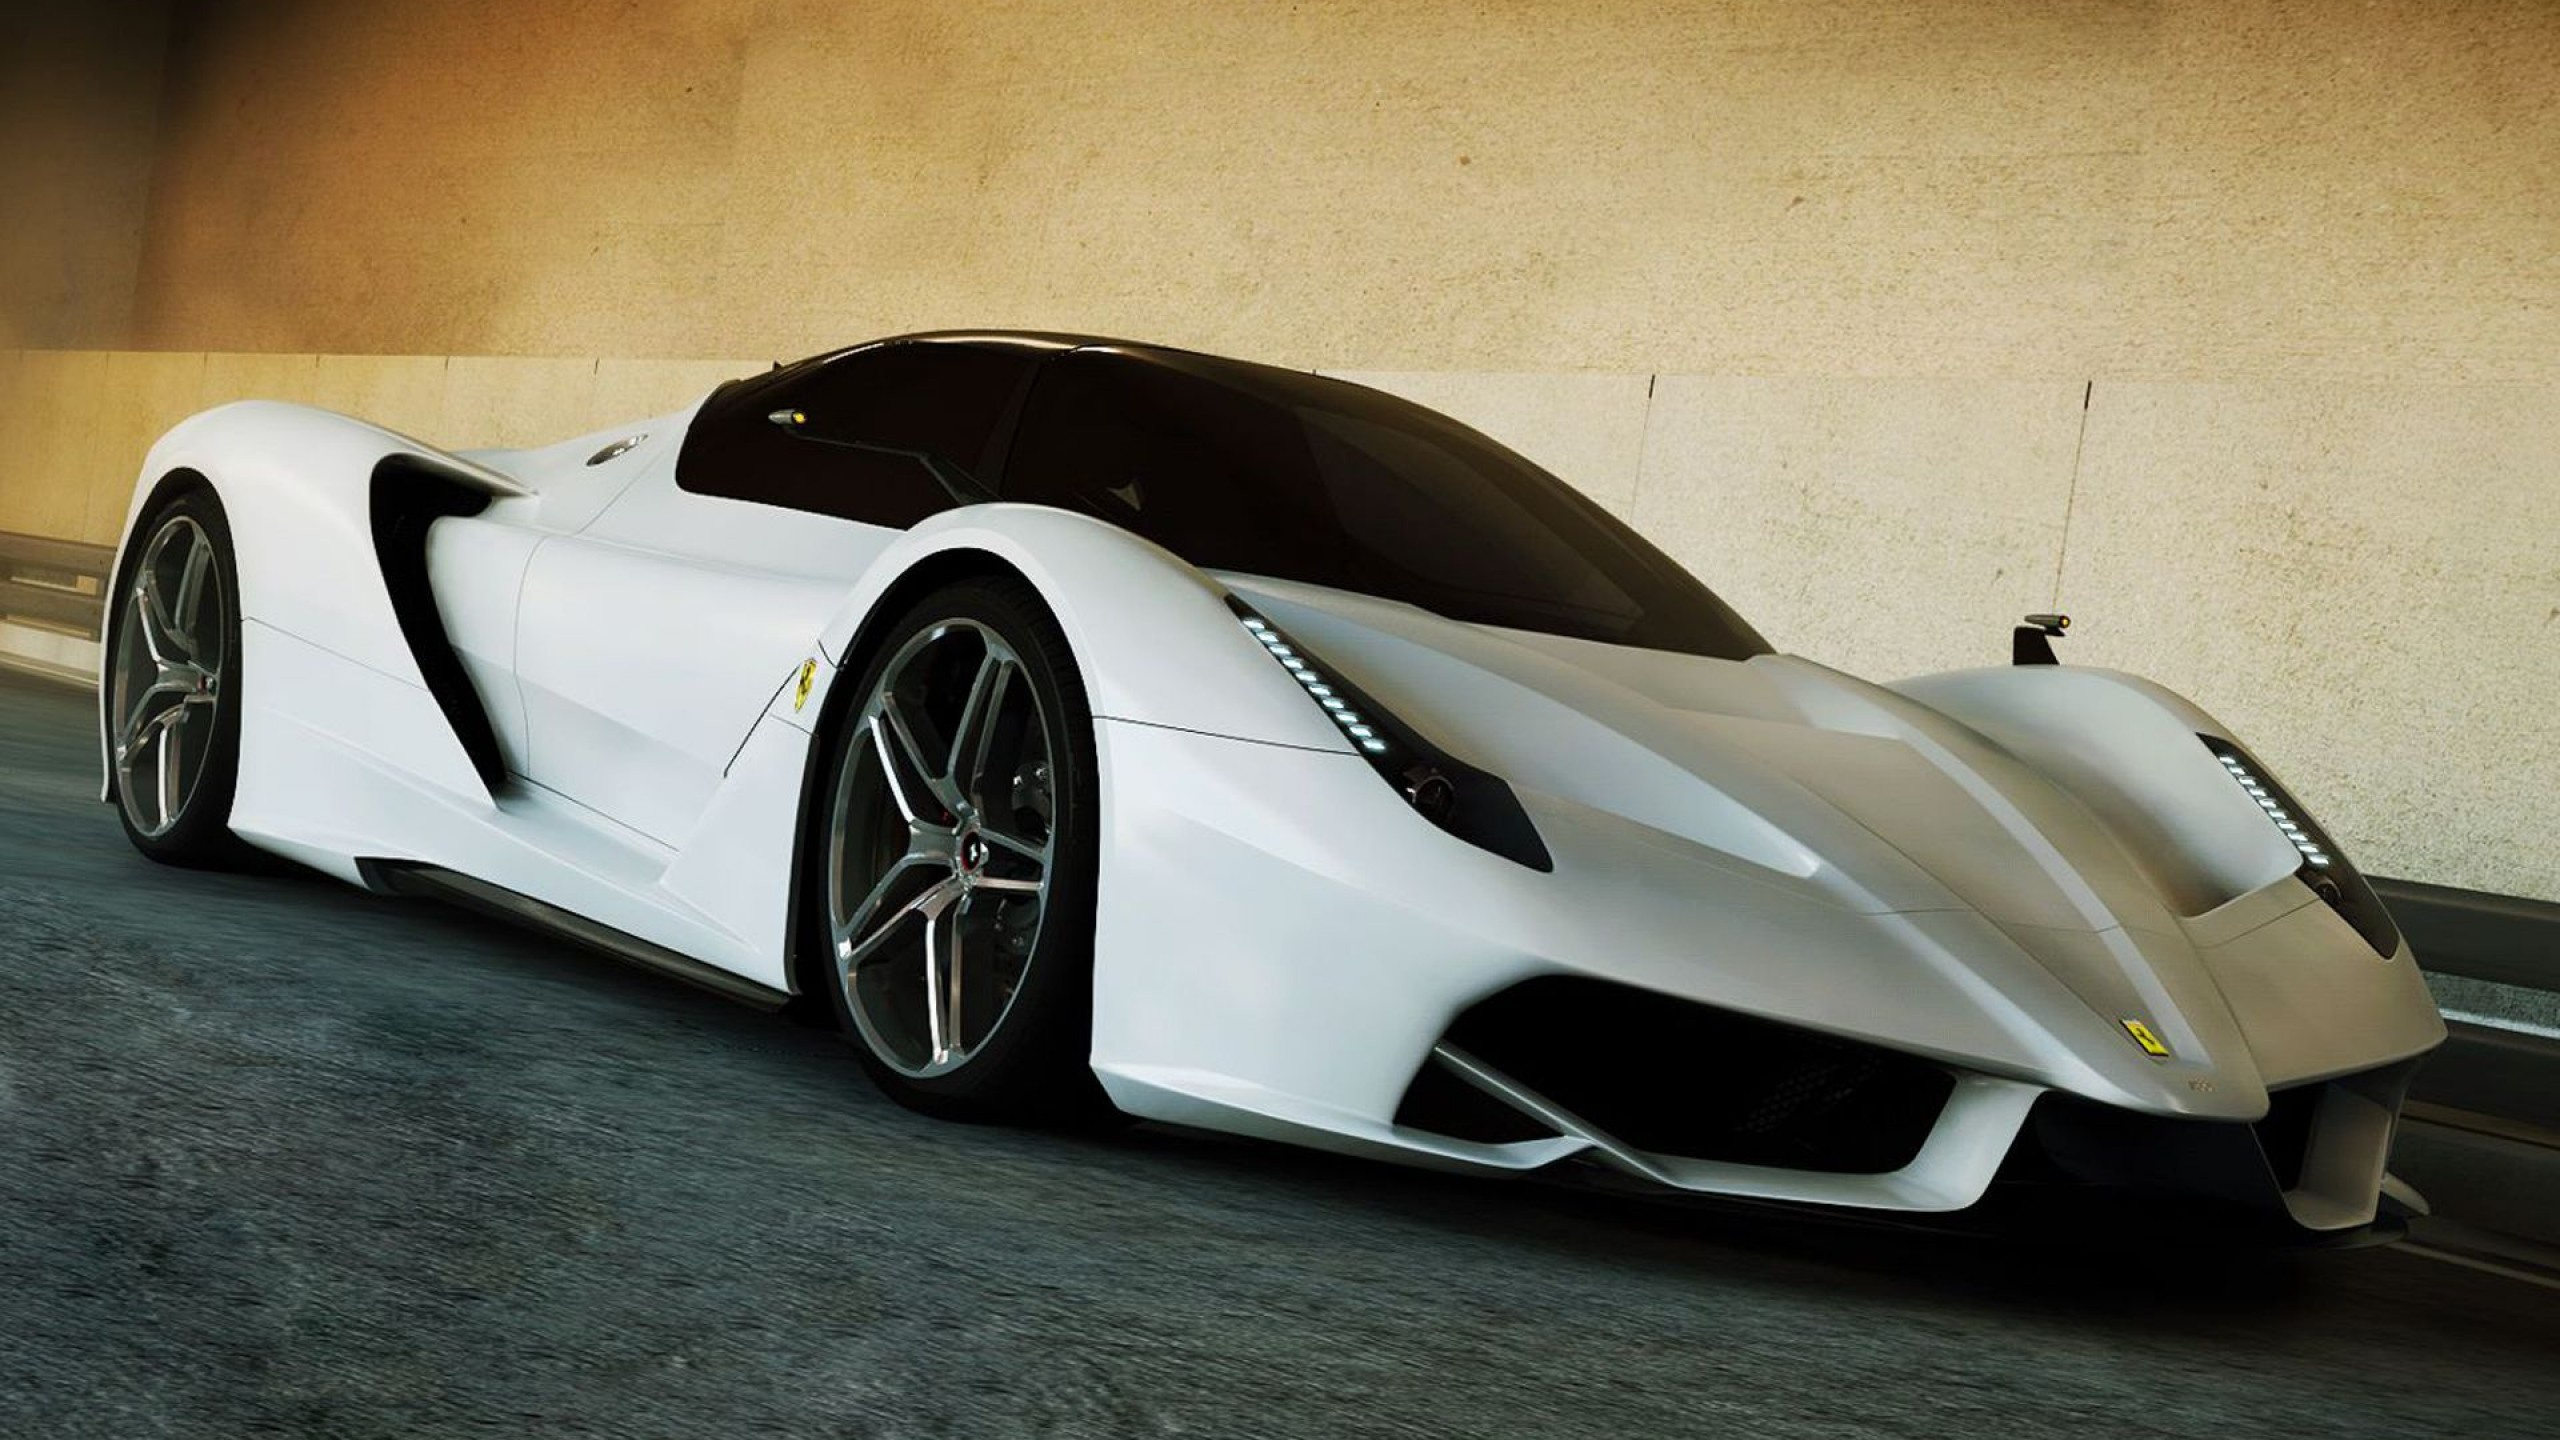 ferrari f70 conceptcar super car pictures desktop 2560x1440